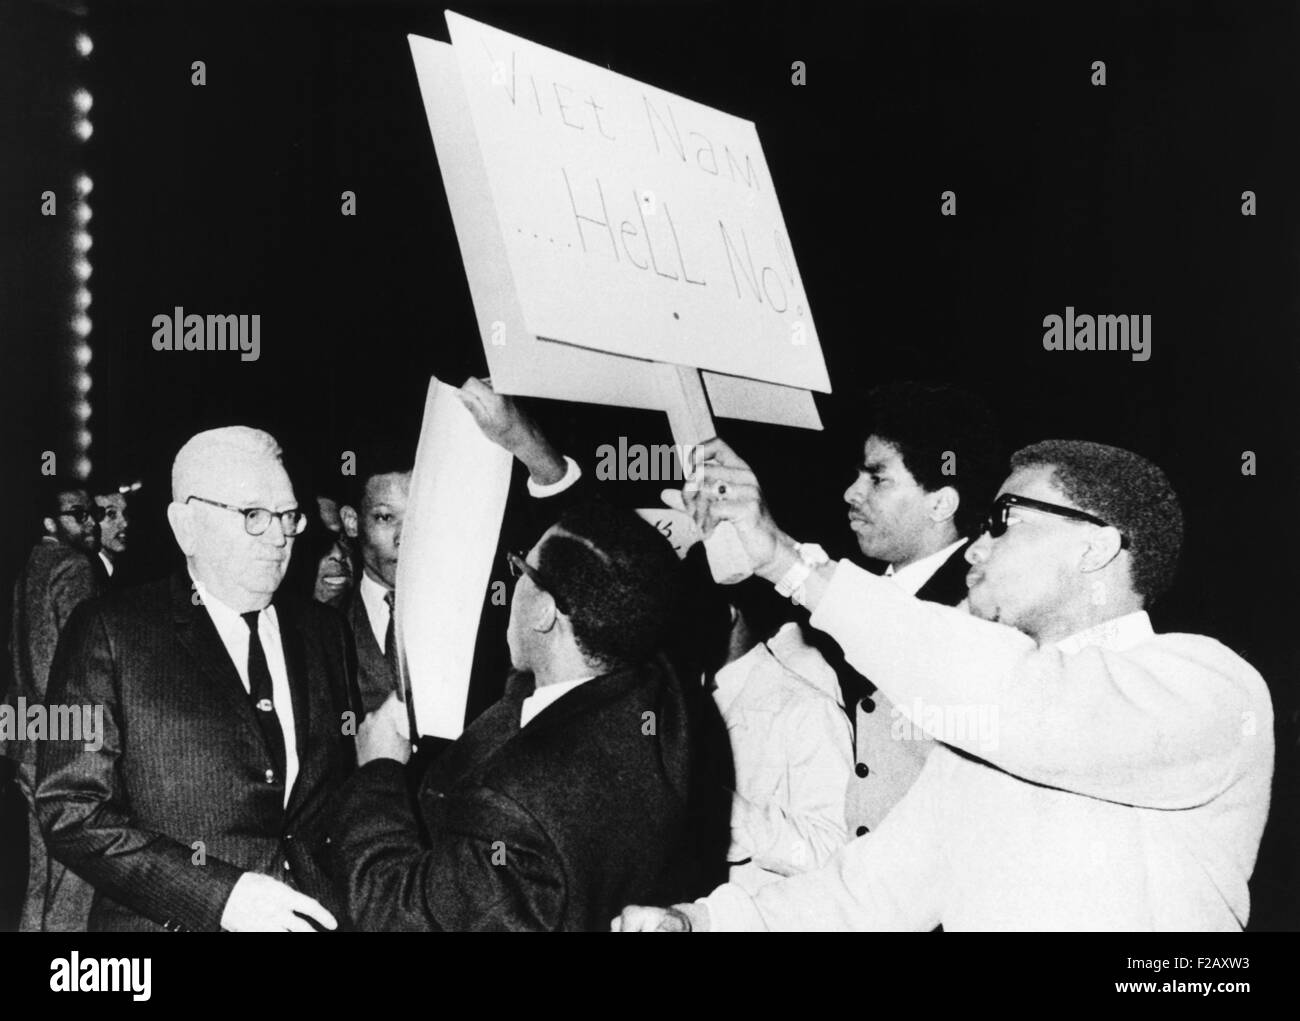 Draft Director Louis Hershey driven from the stage by anti-war protestors at Howard University. March 21, 1967. - Stock Image